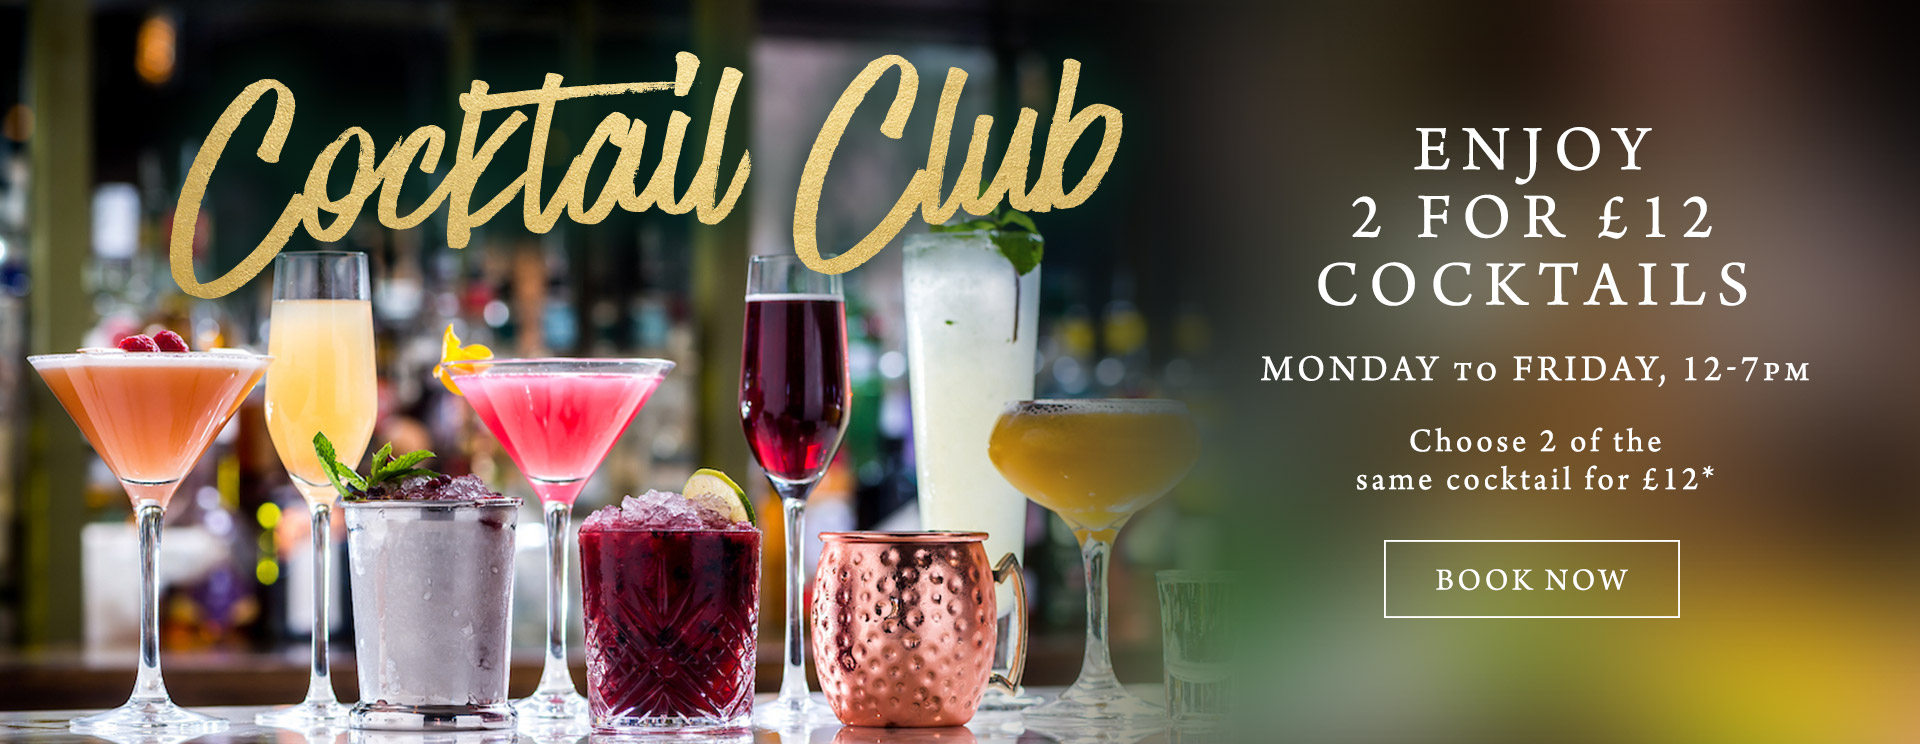 2 for £12 cocktails at The Old Bull & Bush